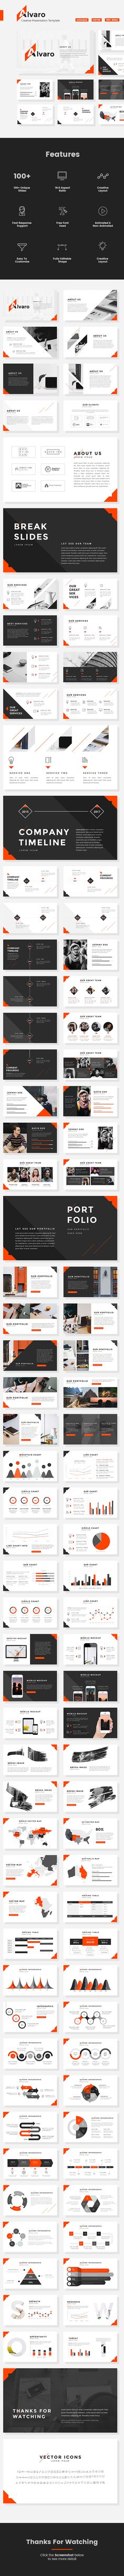 Alvaro  Creative Google Slides Templates — Google Slides PPTX #infographic presentation #pitch deck presentation • Download ➝ https://graphicriver.net/item/alvaro-creative-google-slides-templates/20340497?ref=pxcr